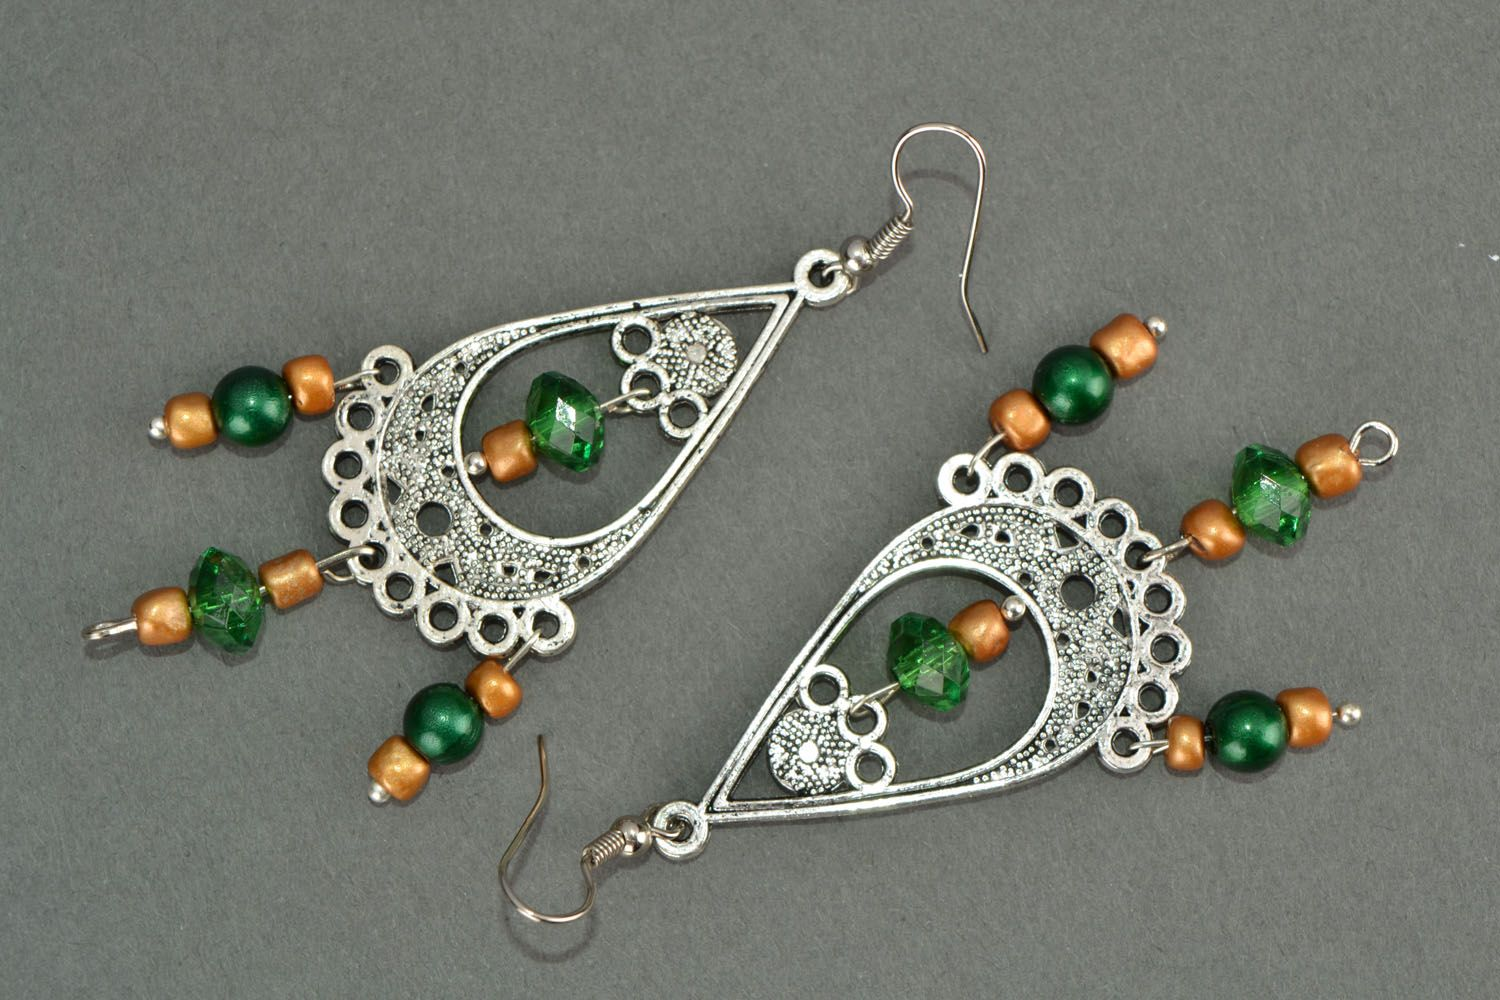 Long earrings in Eastern style photo 3